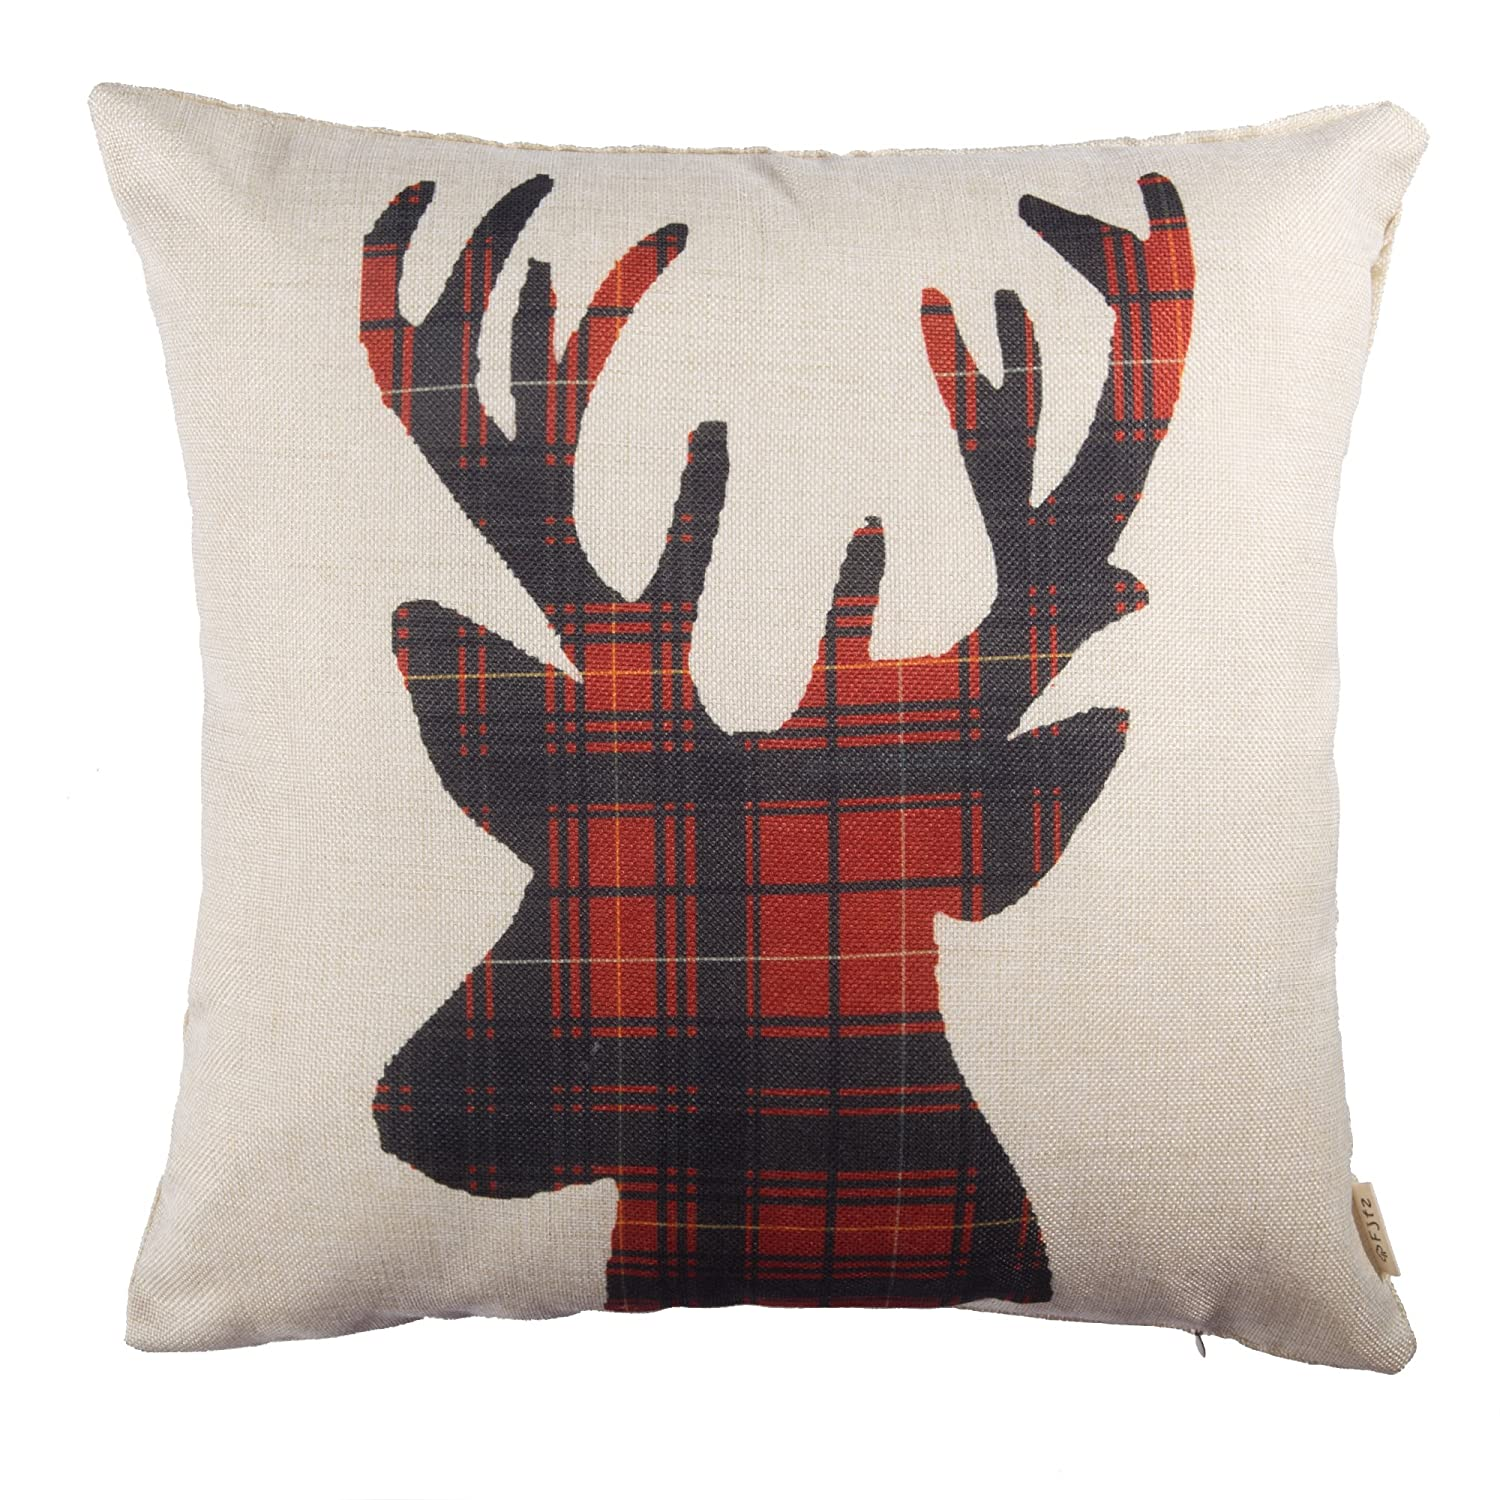 Plaid reindeer pillow for holiday and Christmas decor. #holidaydecor #deer #reindeer #plaid #pillow